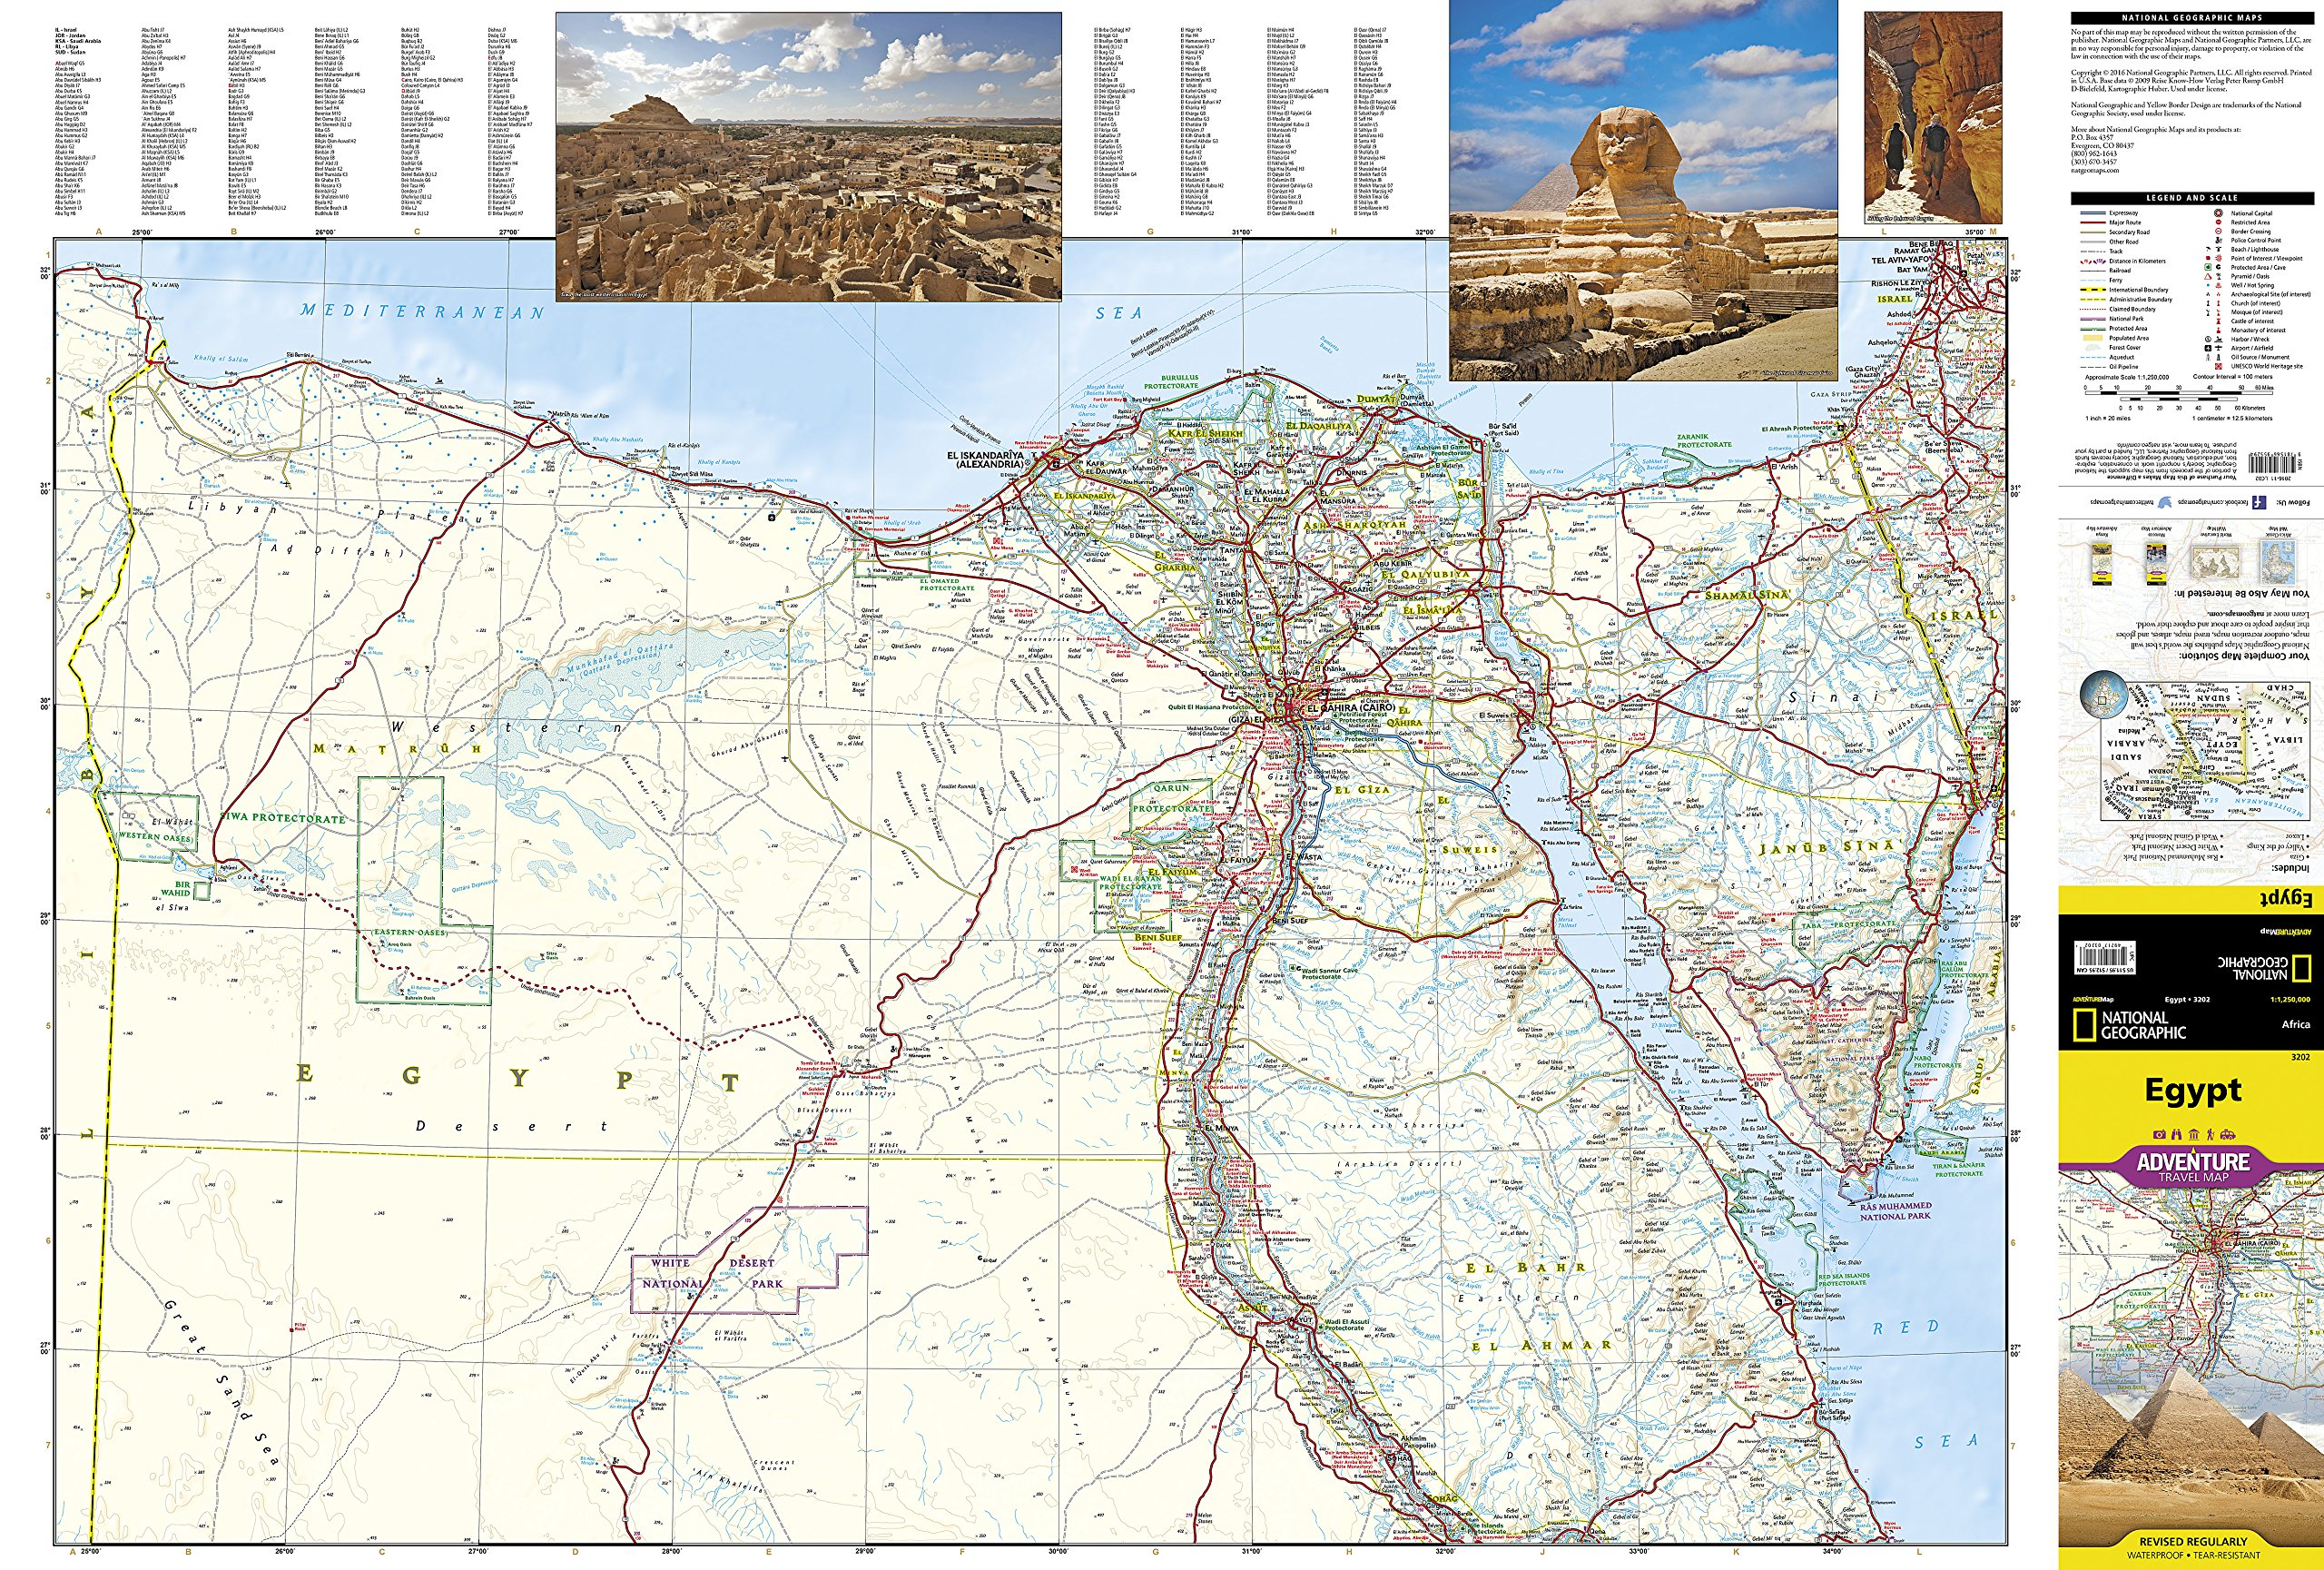 Egypt National Geographic Adventure Map National Geographic - Map of egypt hd